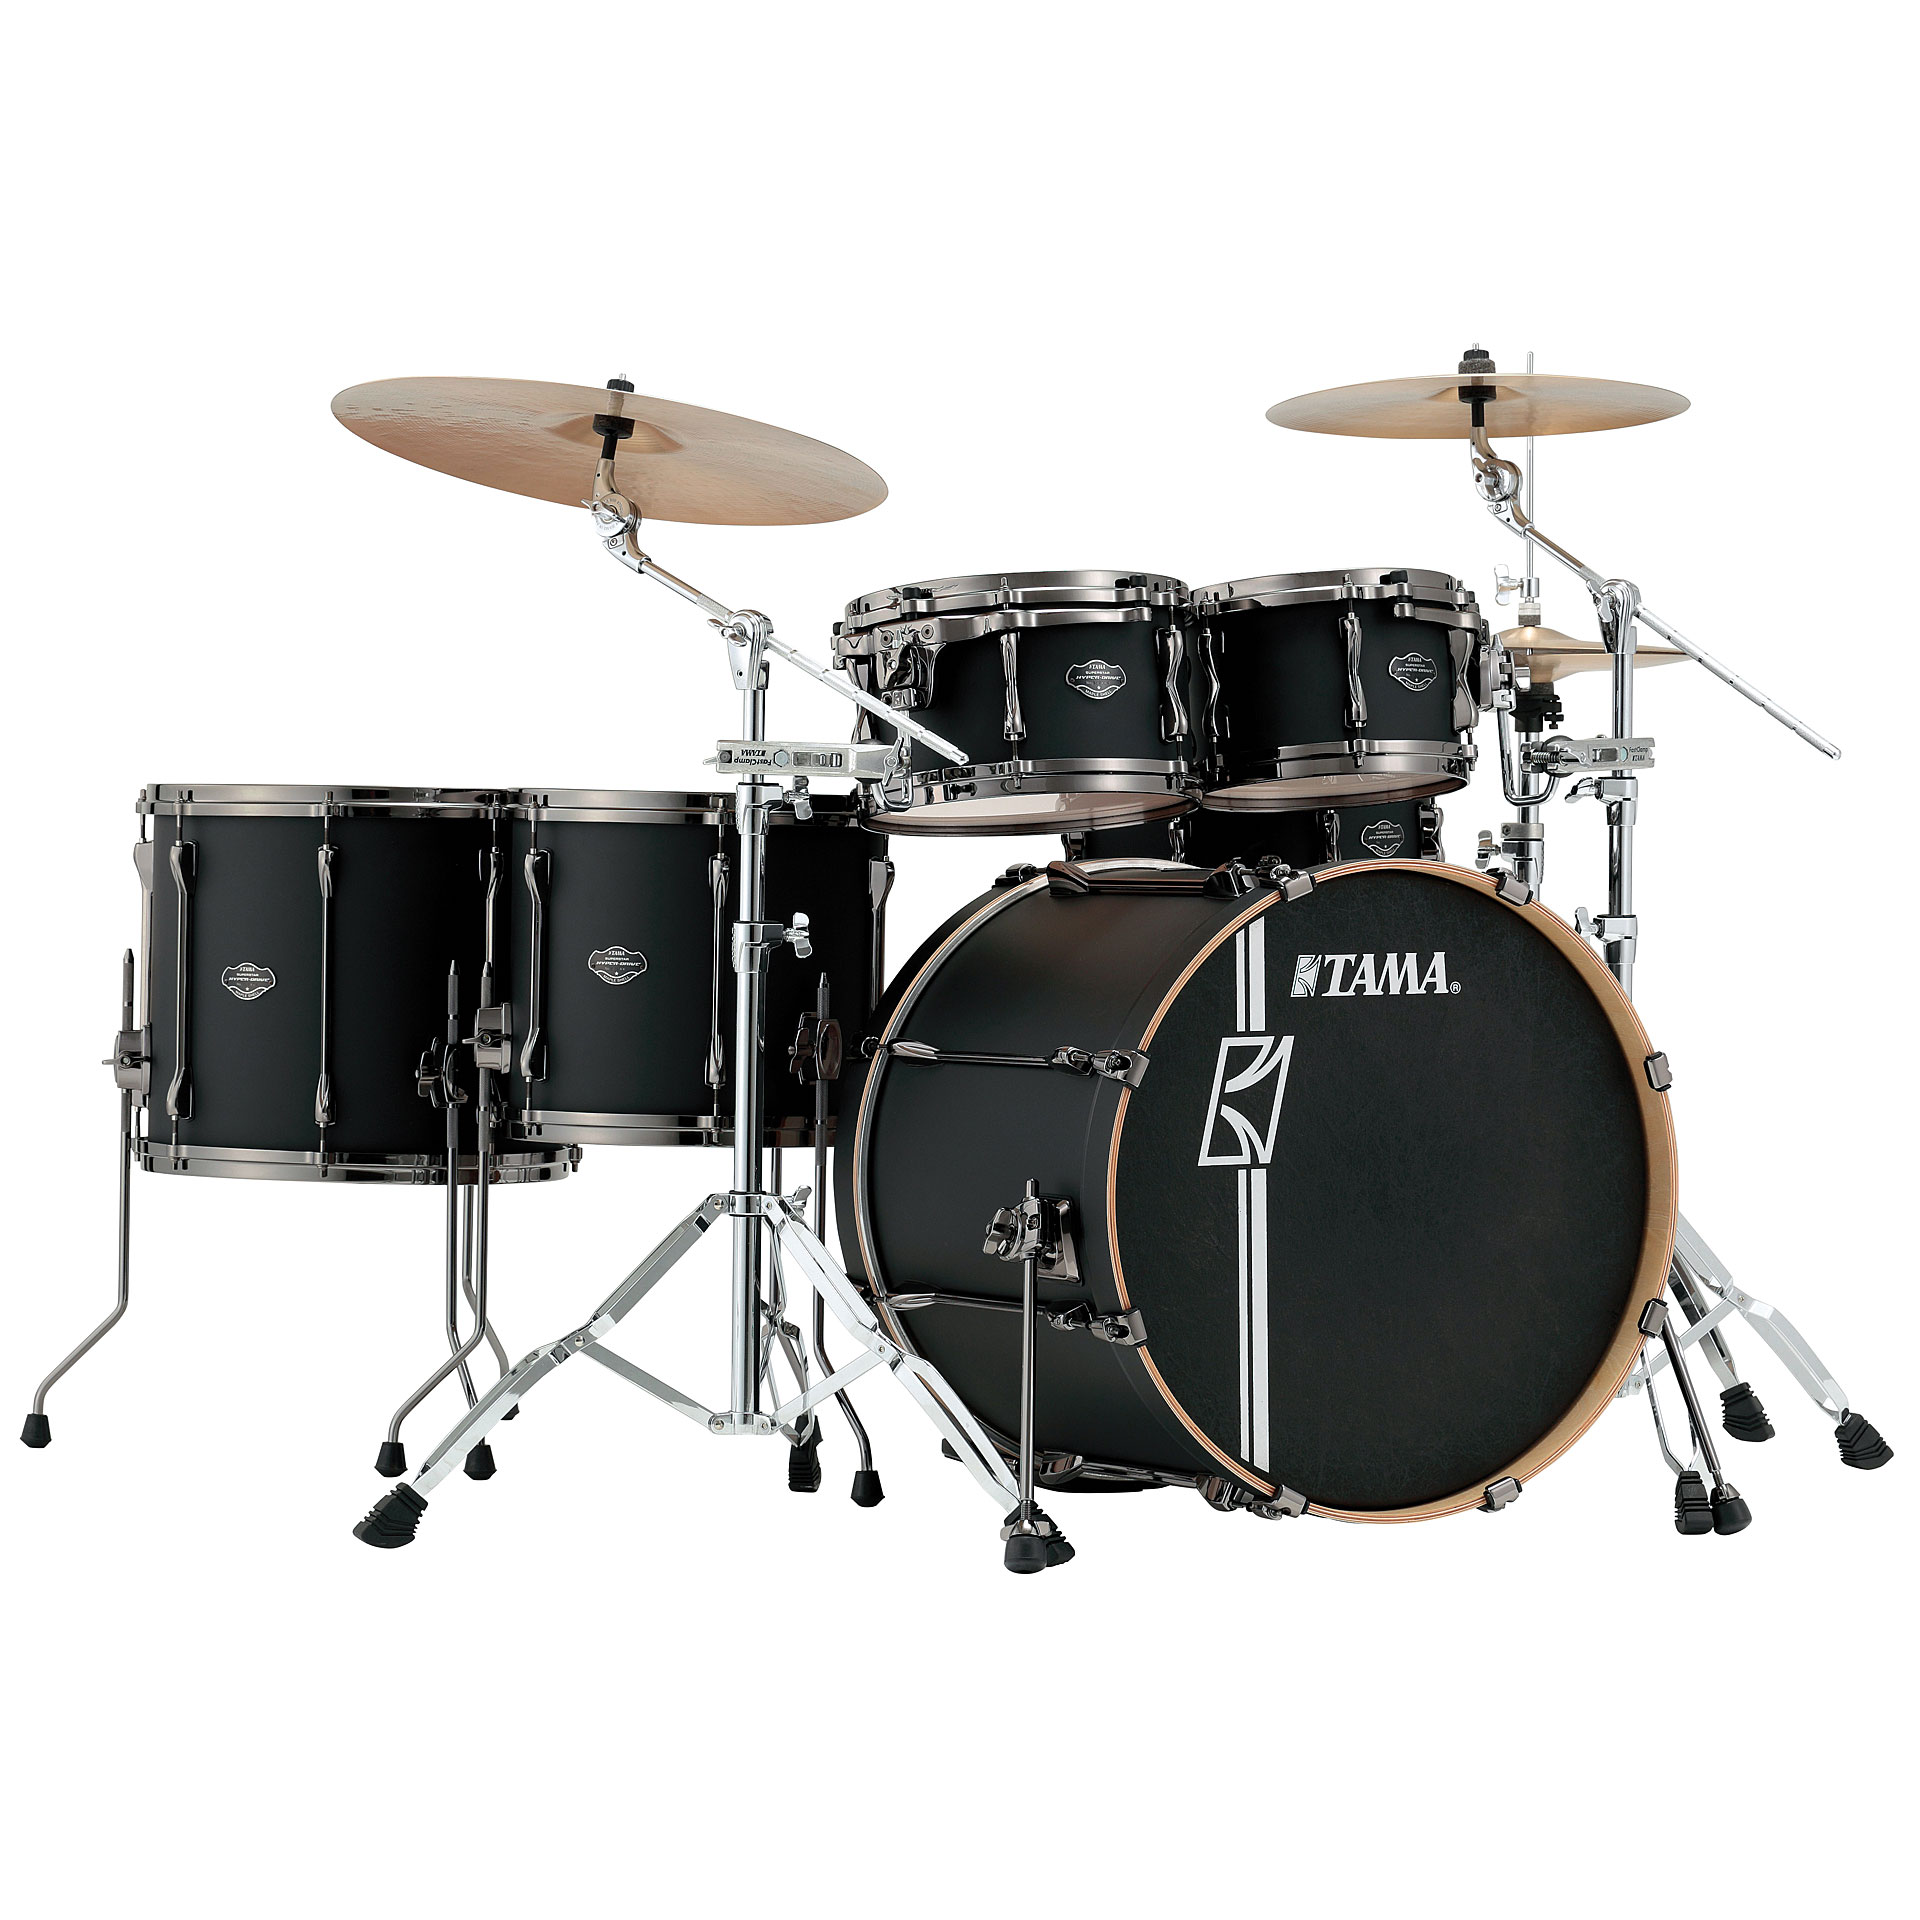 Tama Superstar Custom 22  Flat Black      Drum Kit Drum Kit Tama Superstar Custom 22 Flat Black